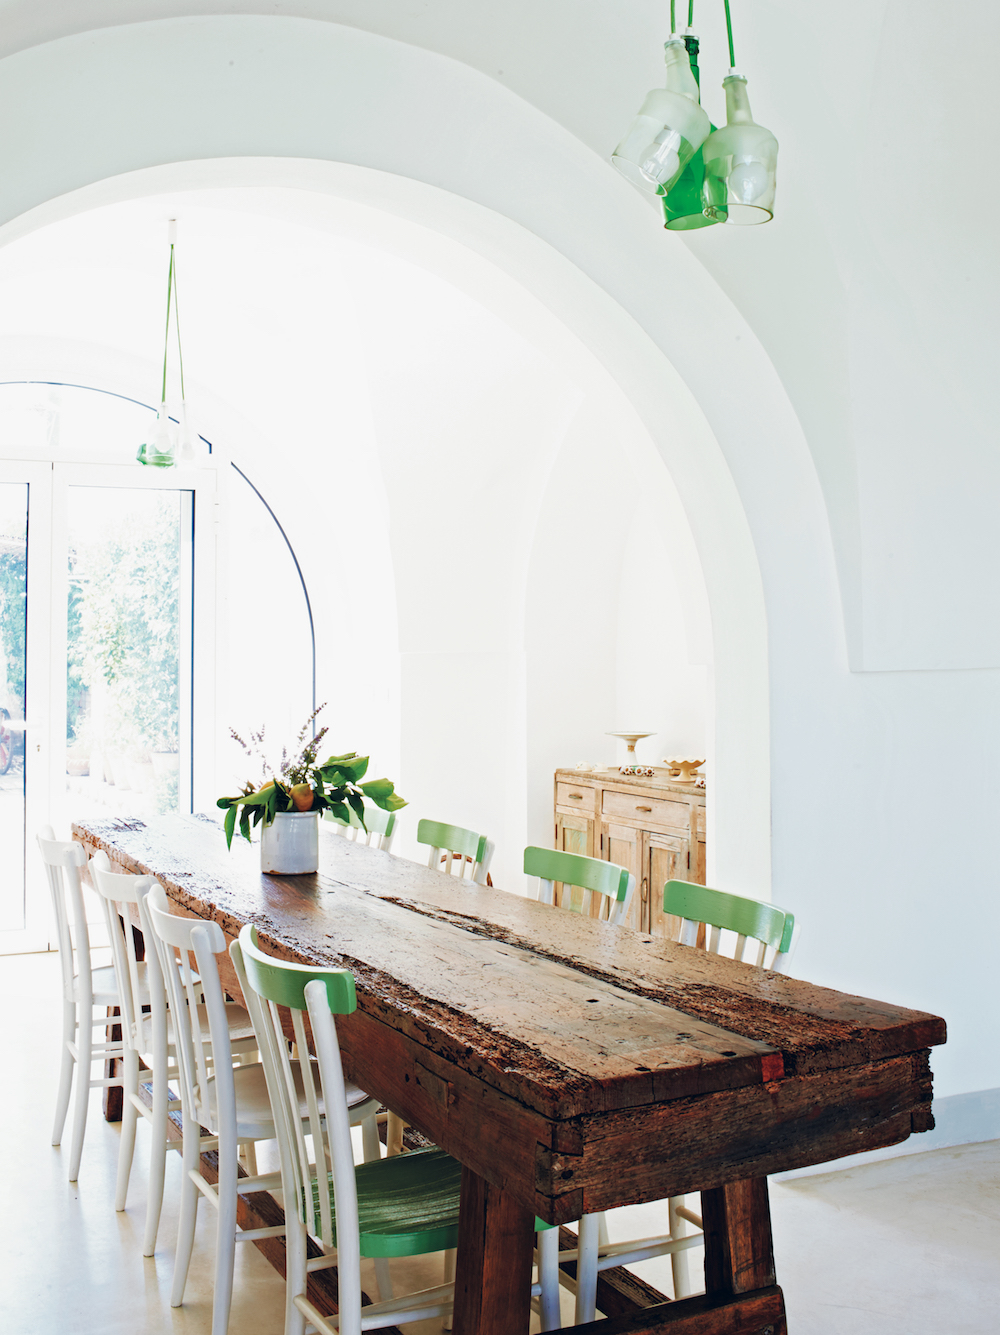 Italian Rustic: Home of architect Raffaele Centonze & family in the southern Italian region of Puglia.